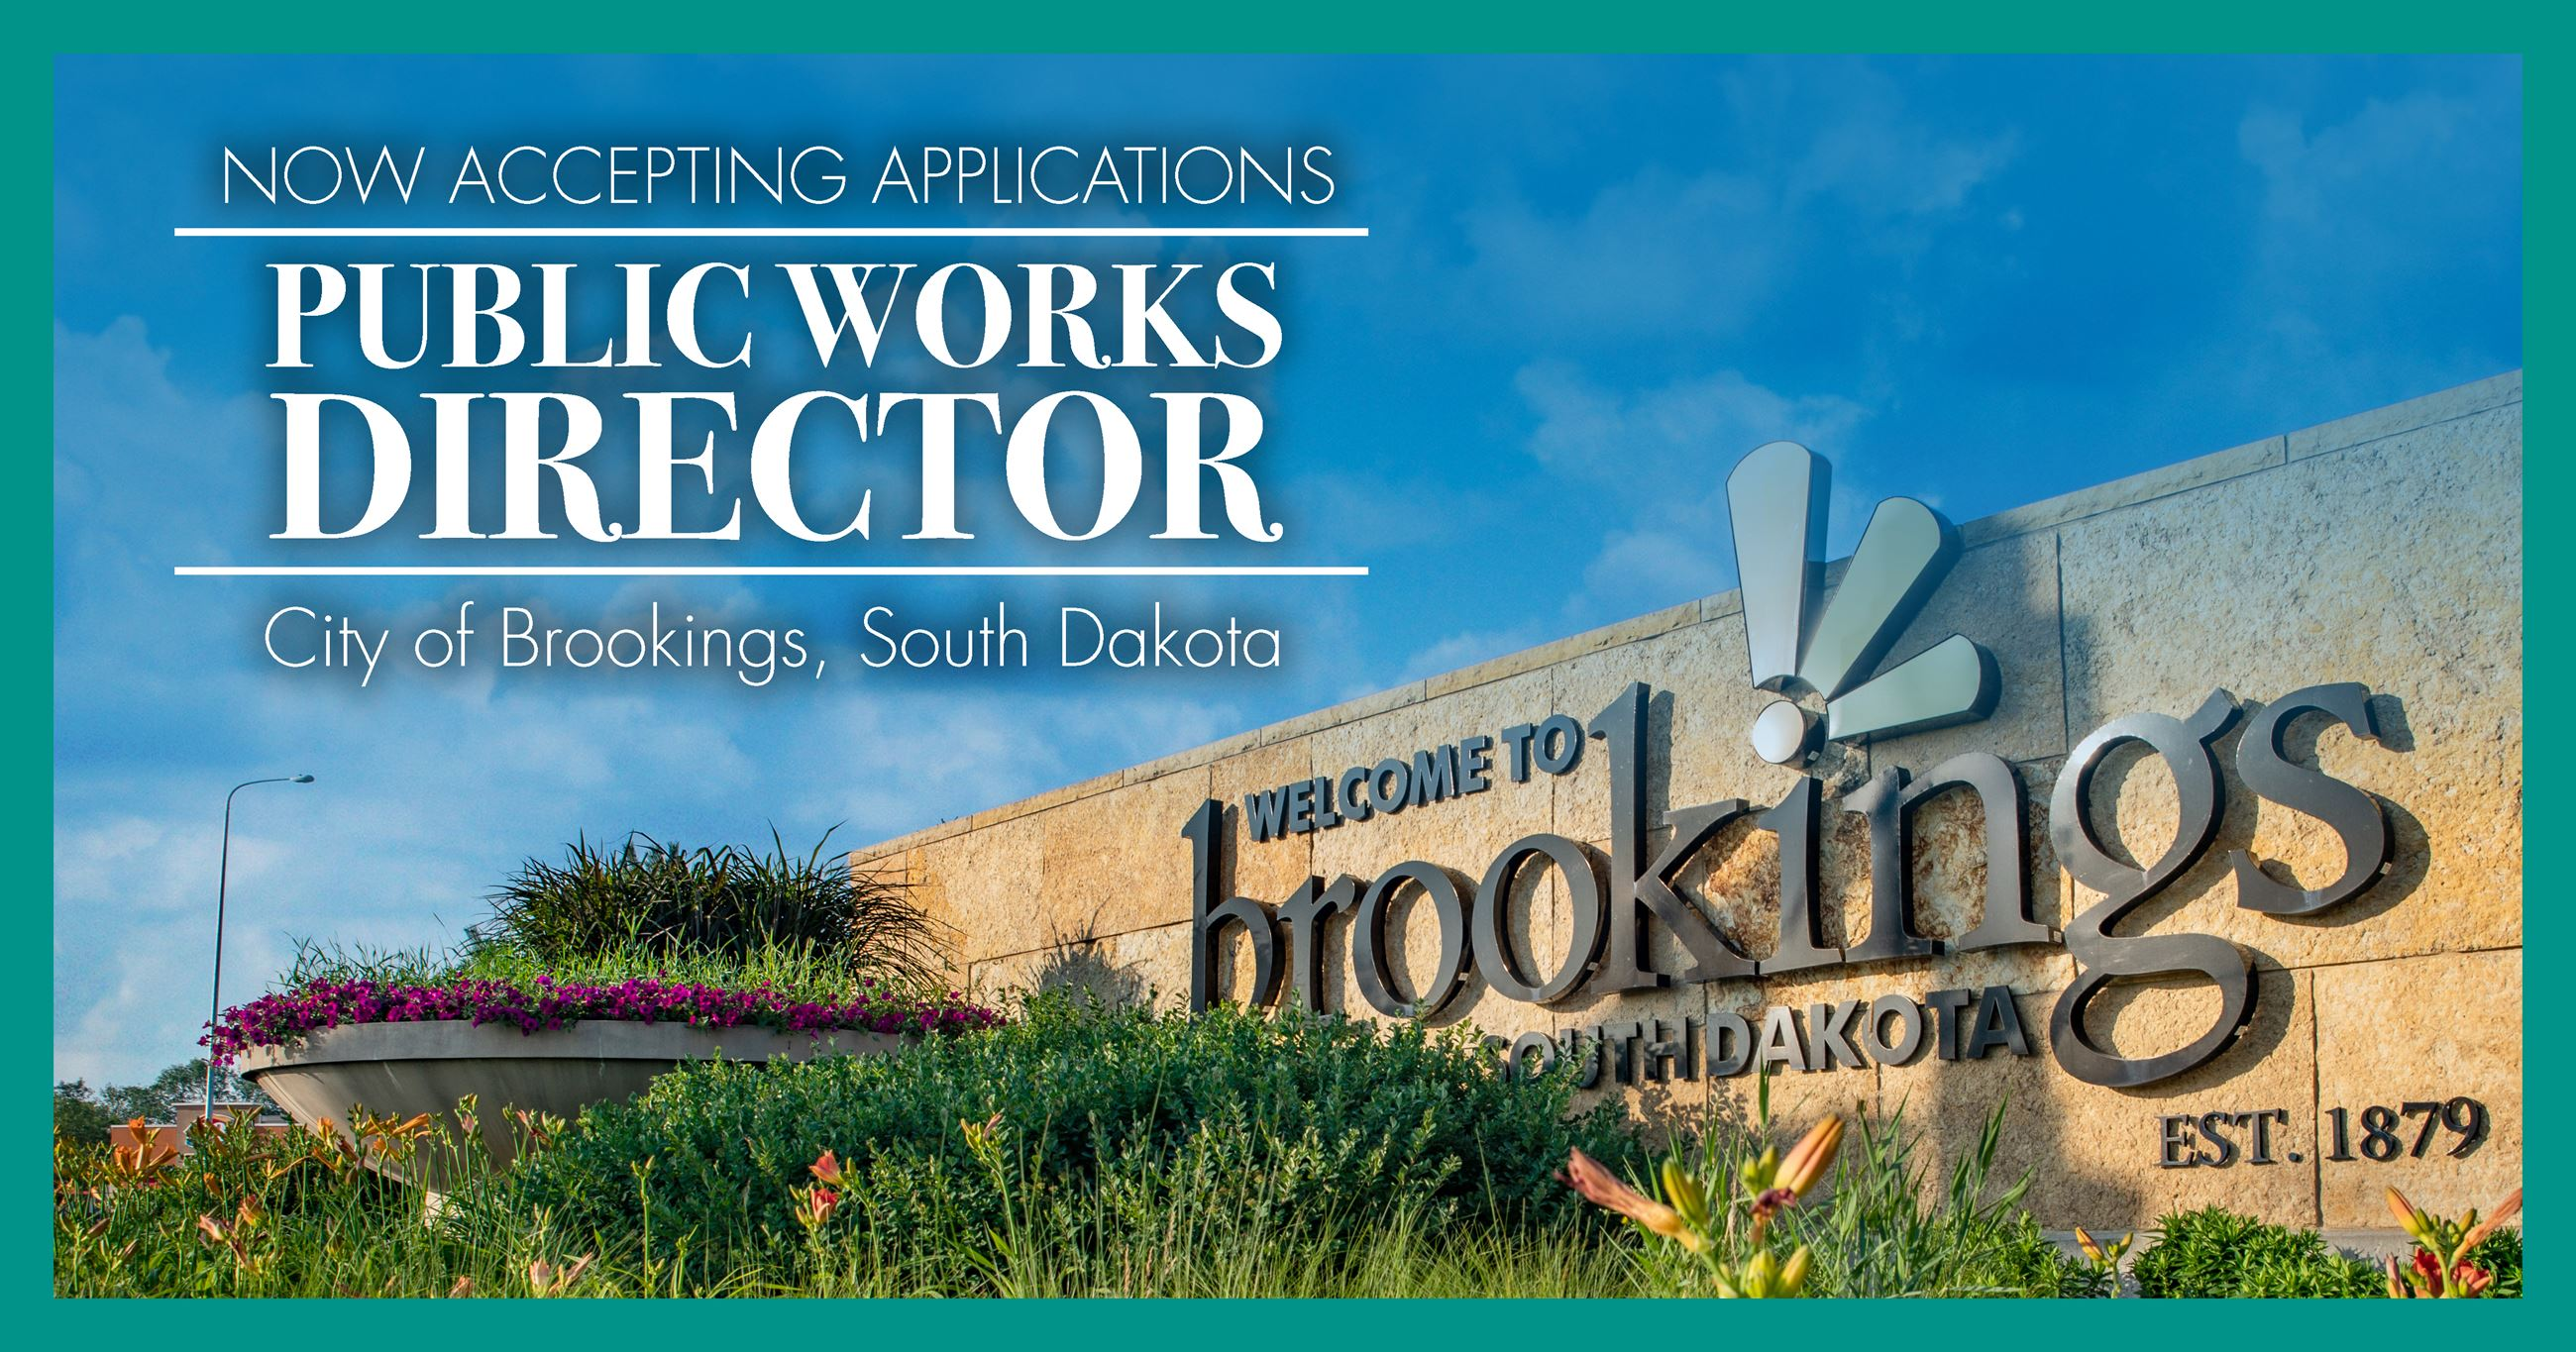 The City of Brookings is hiring a public works director